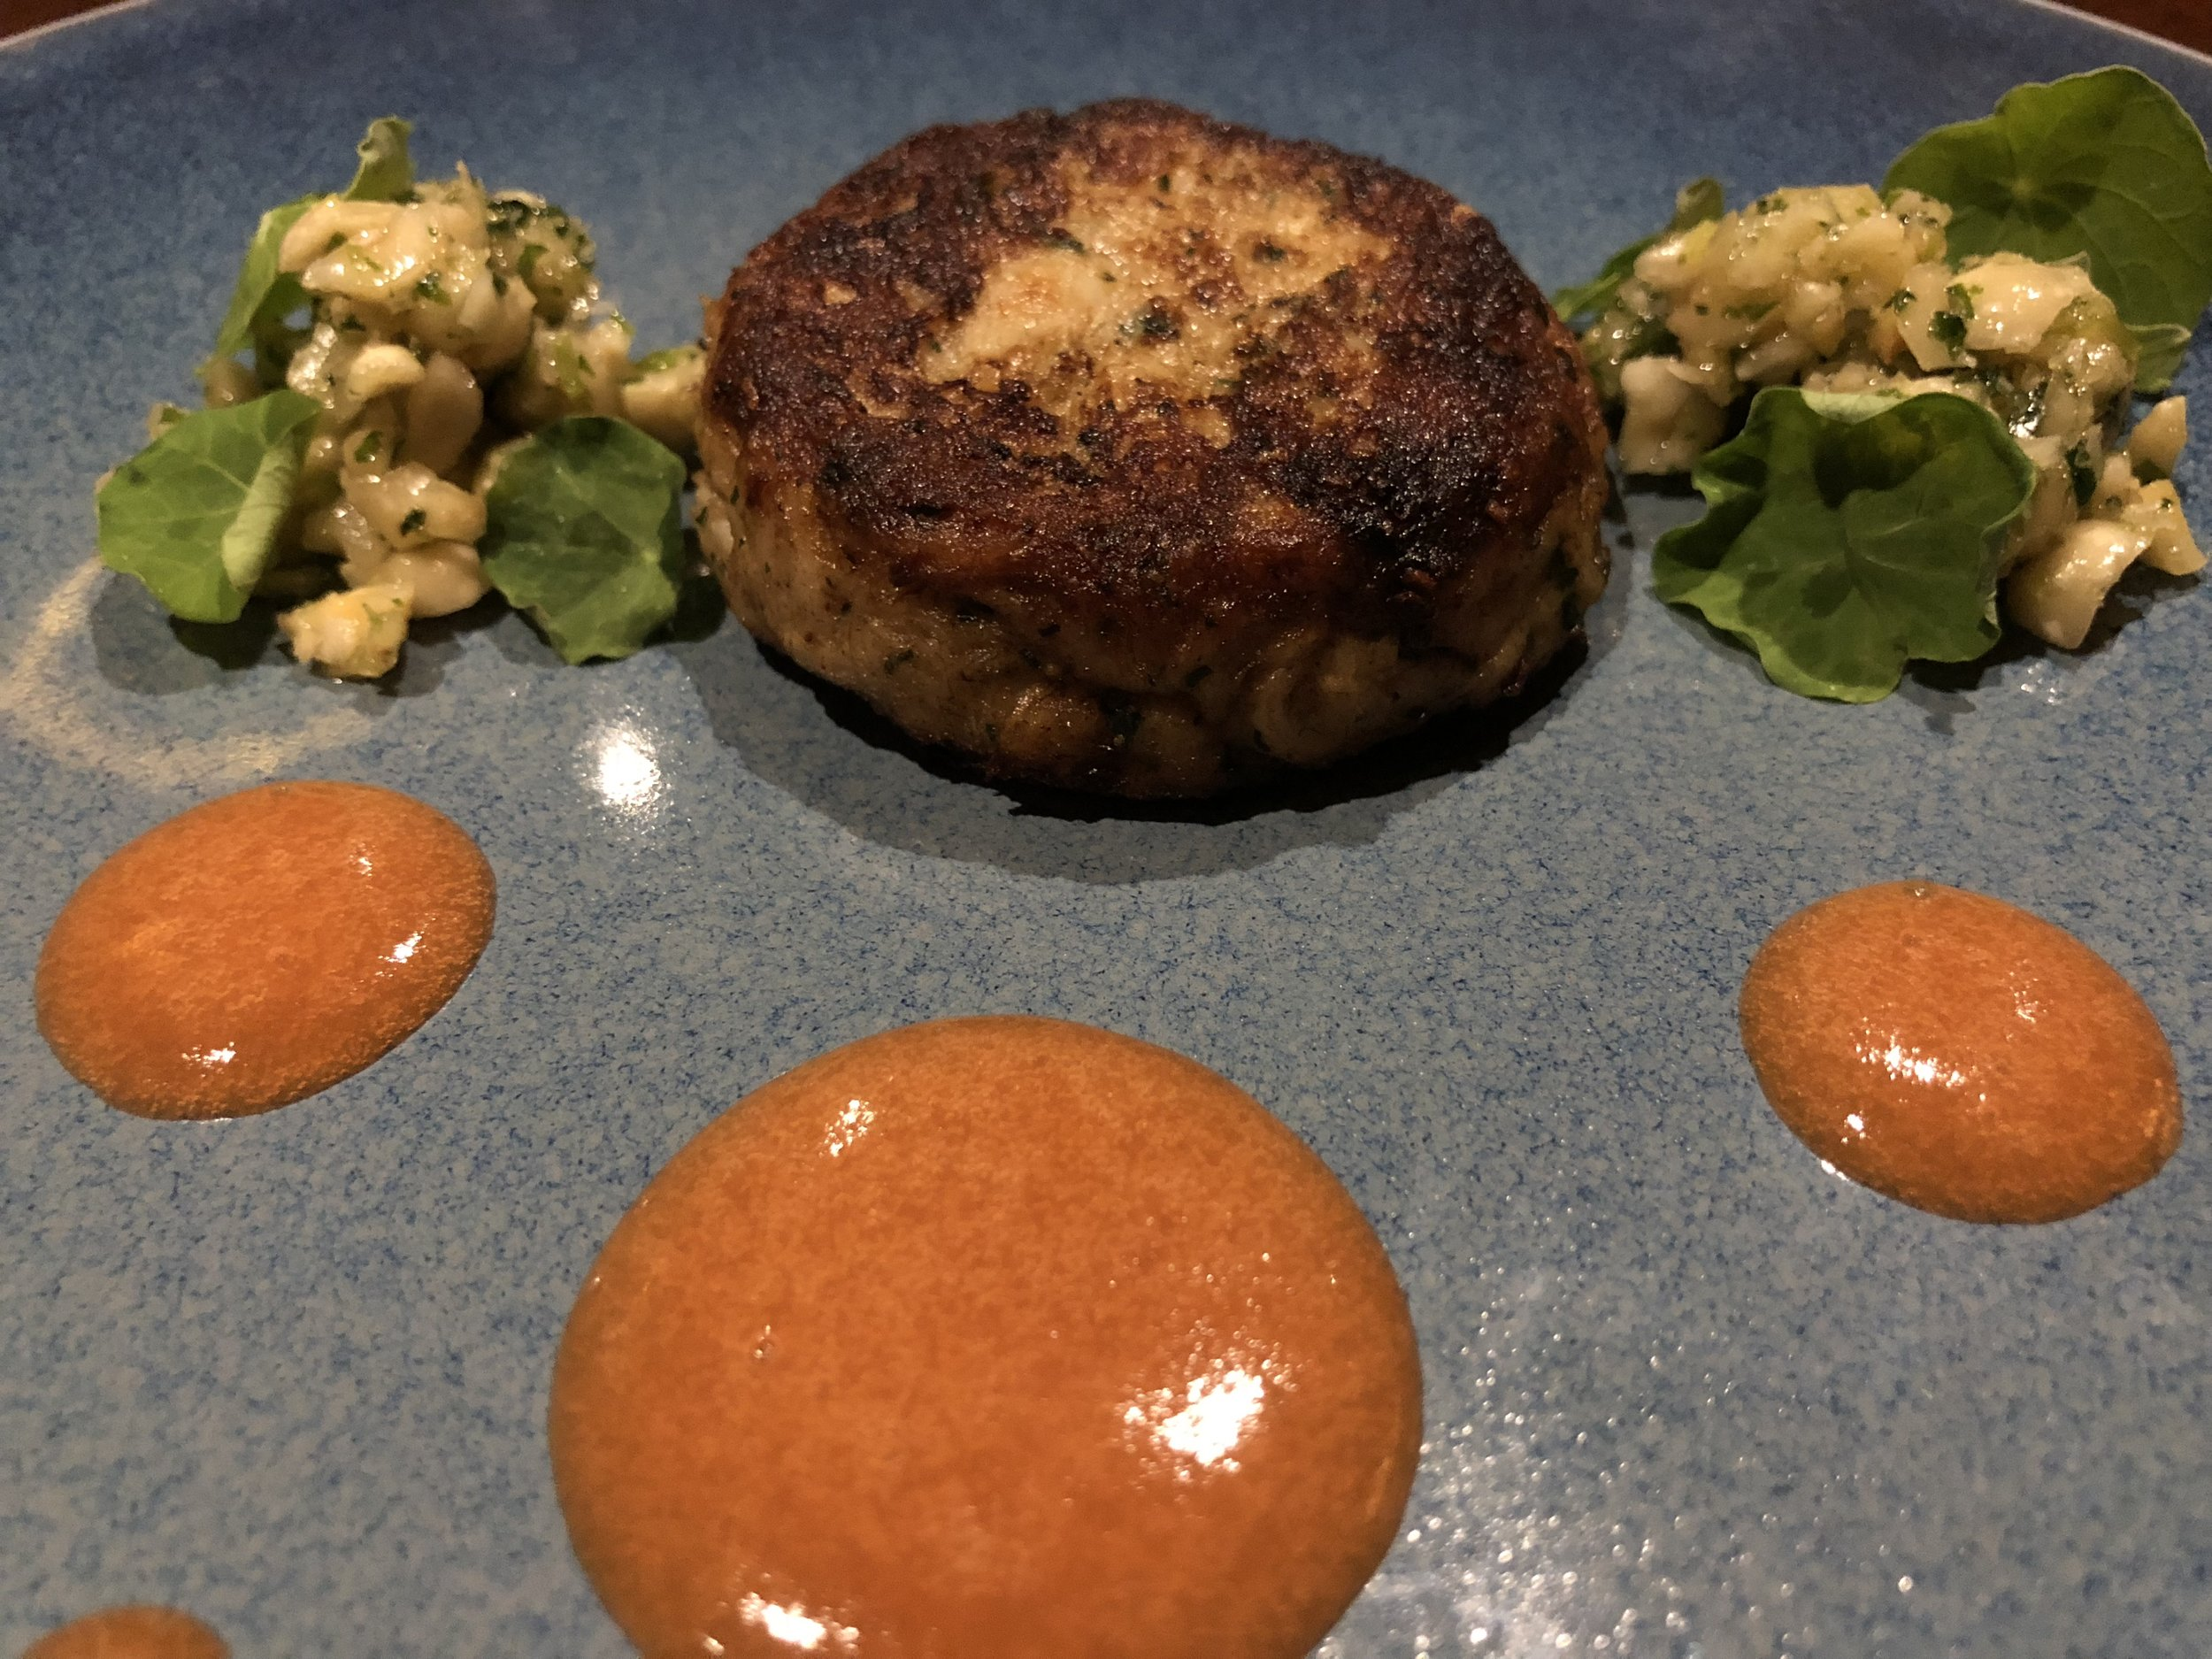 Crab Cake - scallop mousseline, lump crab, mache, blood orange, nasturtium crumble